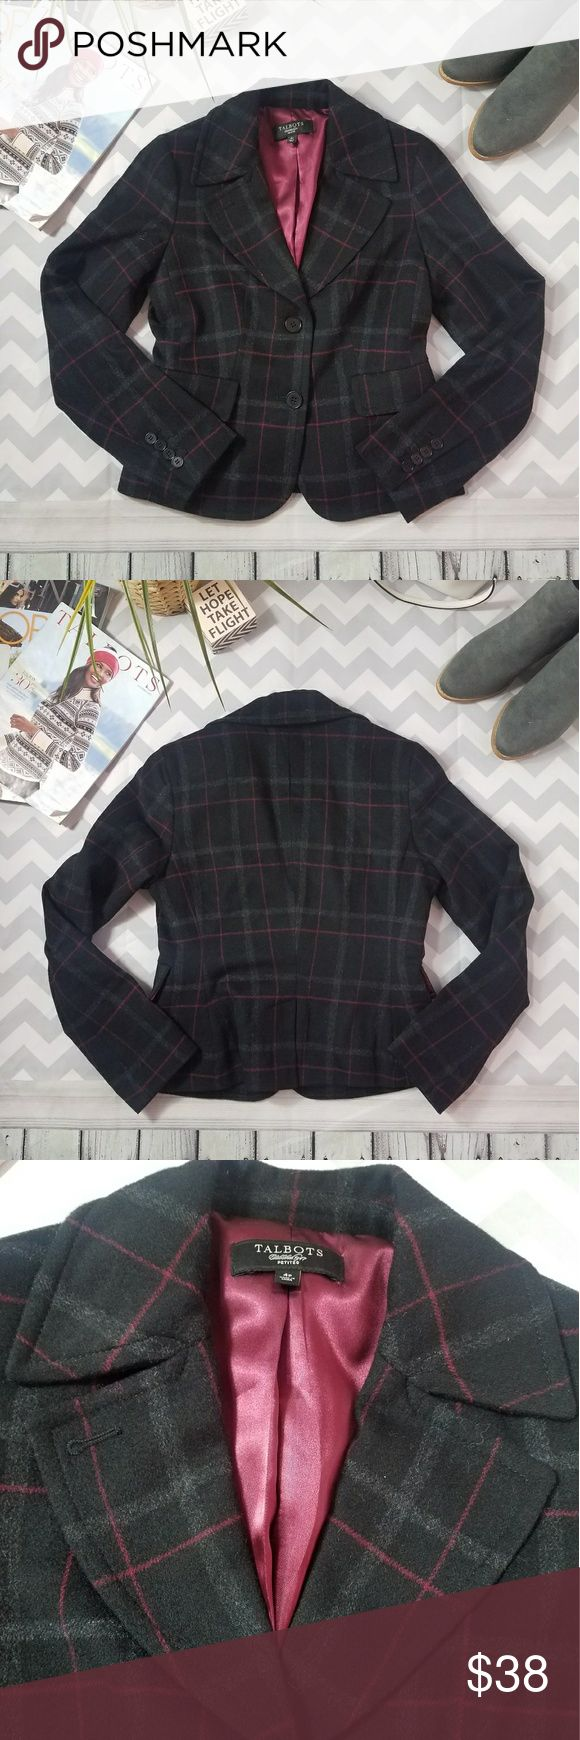 Talbots plaid checked wool black red gray jacket 4 Talbots plaid checked gingham wool black red & gray jacket blazer Super cute and adorable Pefect with cute black pencil or mini skirt Super soft, warm & high quality wool Excellent like new condition Size 4p Please see the pictures for measurements Offers are always welcome! Talbots Jackets & Coats Blazers